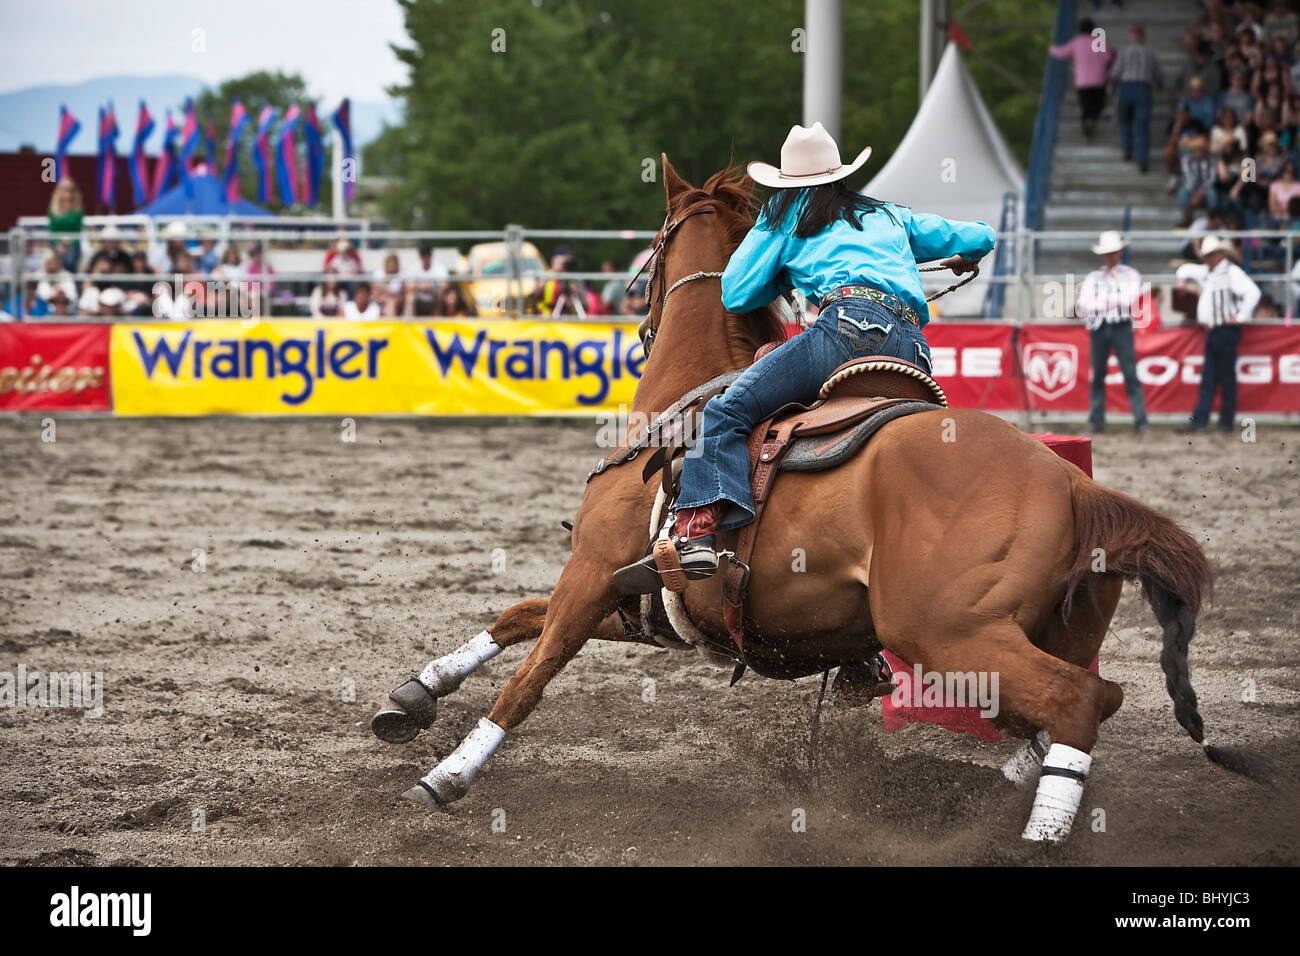 Cowgirl riding a horses during Rodeo - Stock Image